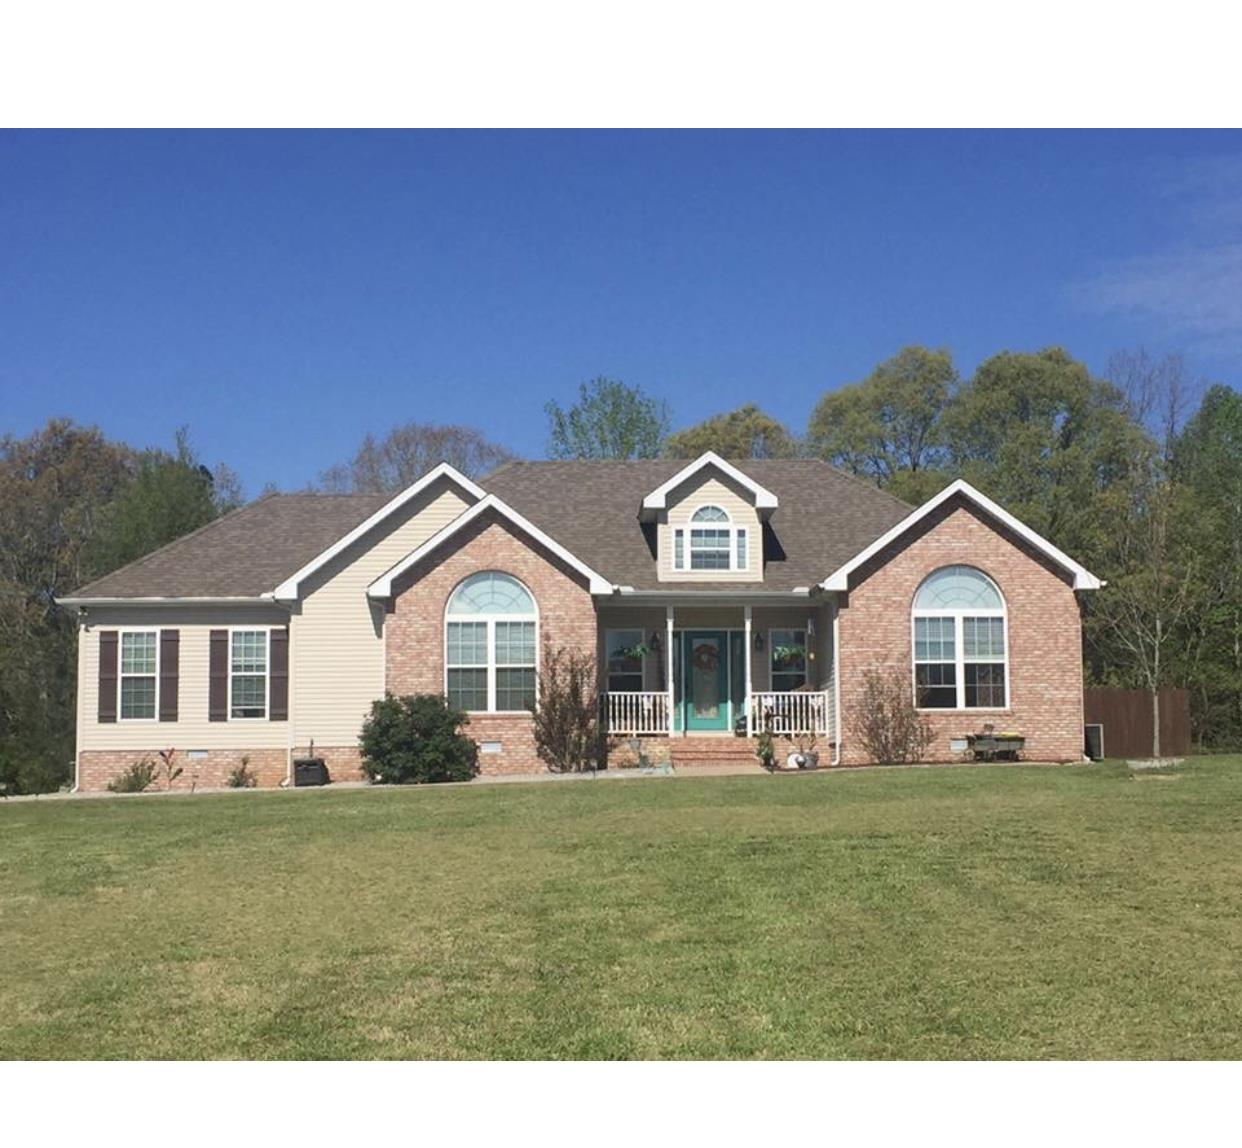 403 S Point Dr, Camden, TN 38320 - Camden, TN real estate listing